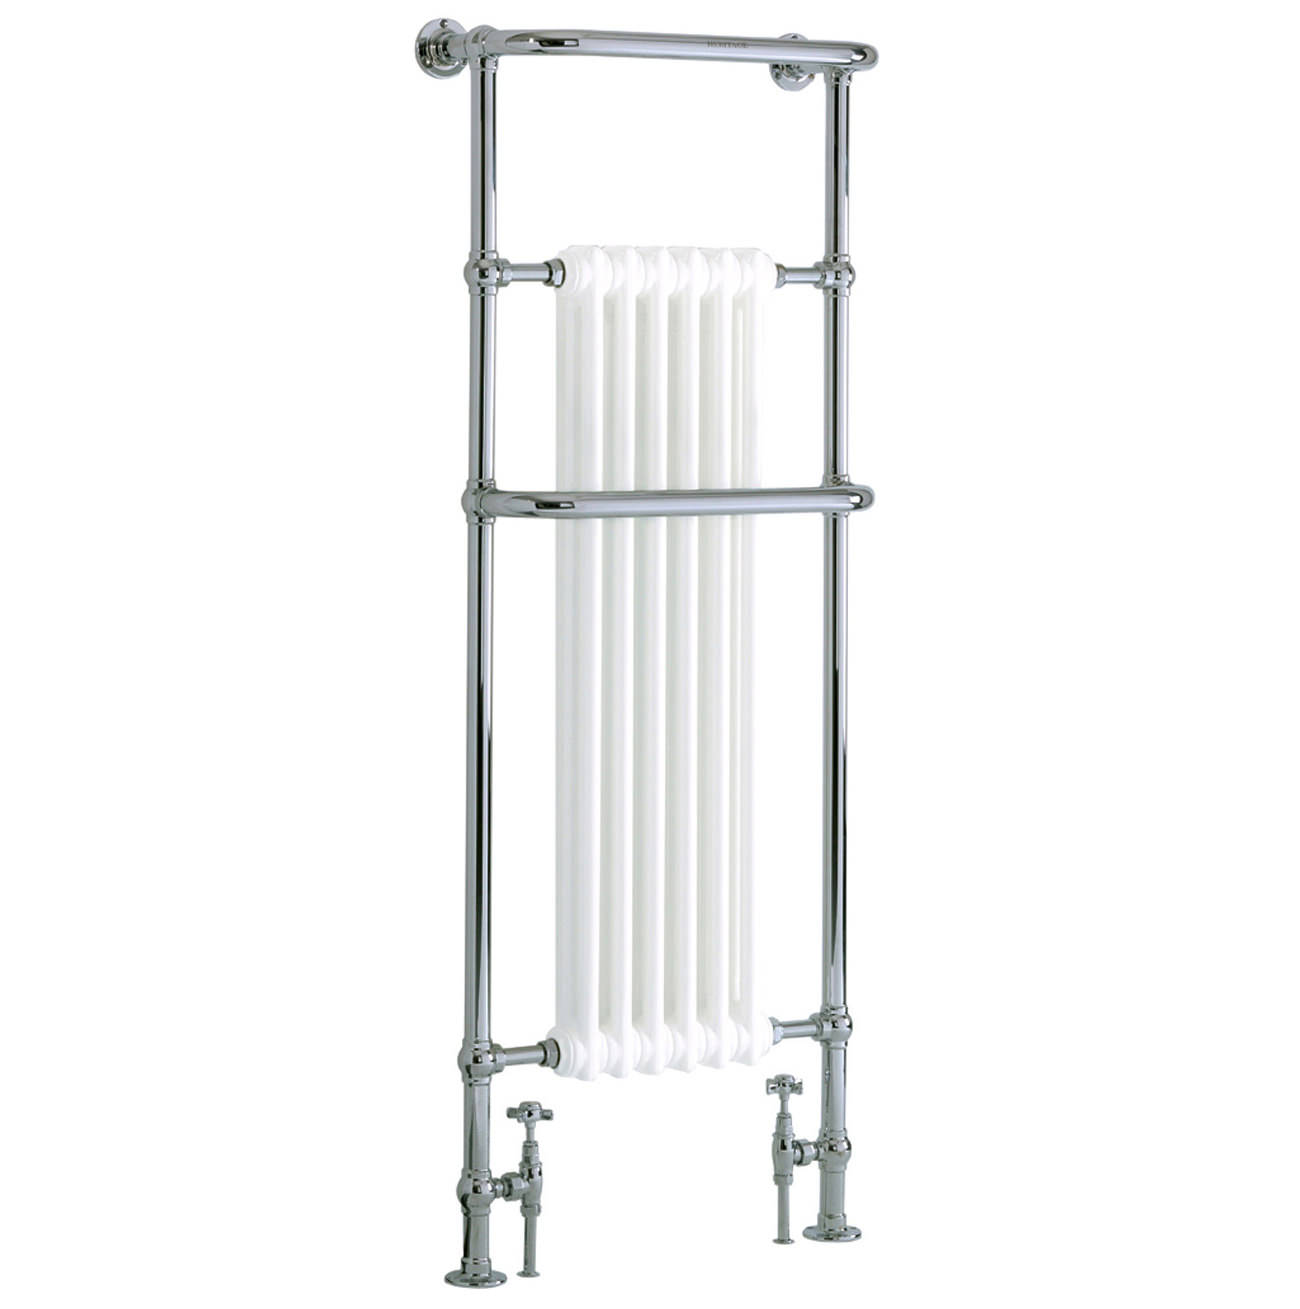 Heated Towel Rail Height From Floor: Heritage Cabot Heated Towel Rail